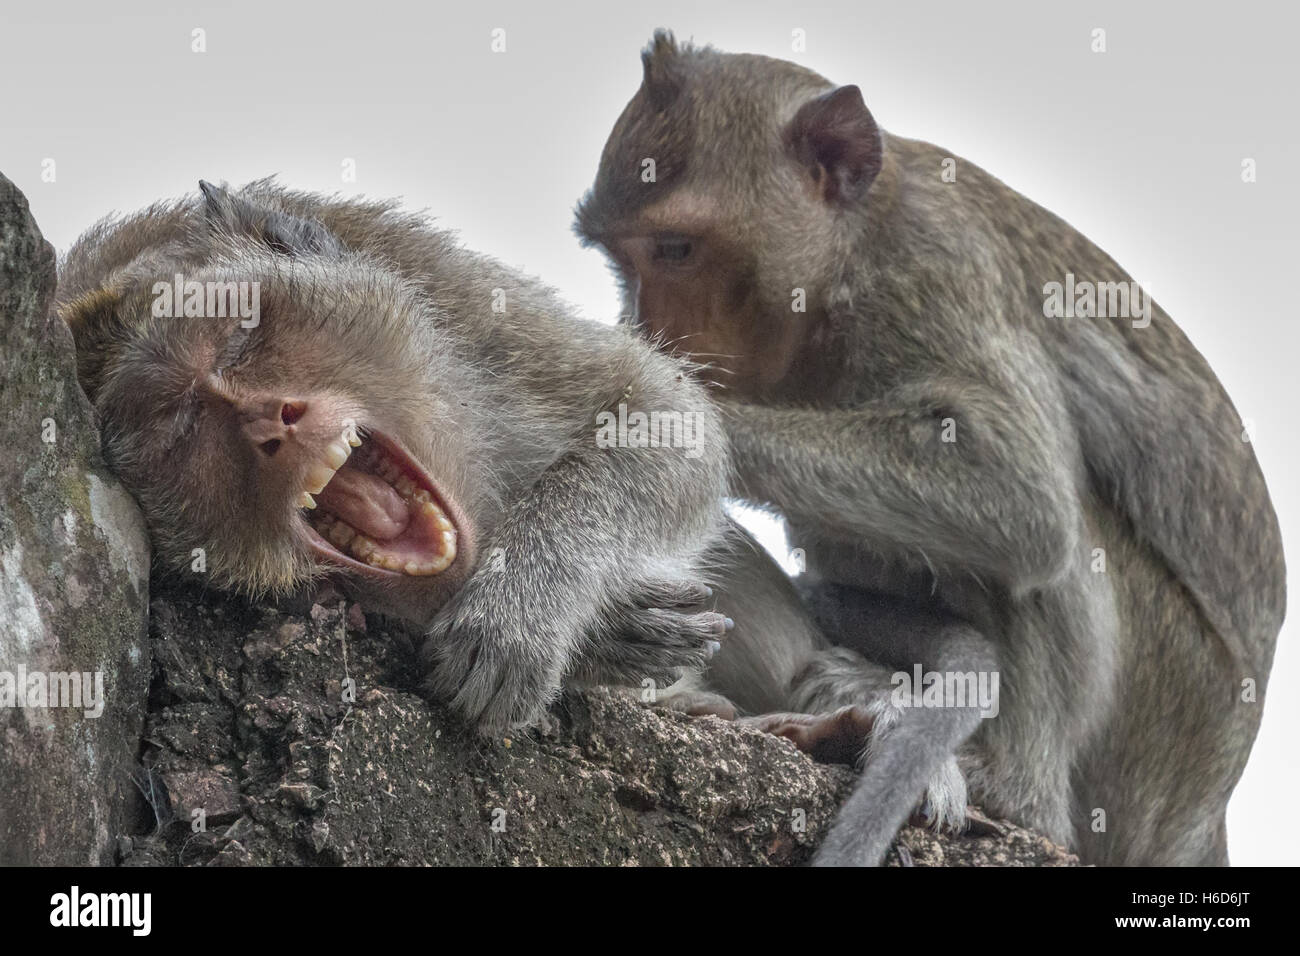 Yawning & being groomed Long-Tailed Macaques Angkor Wat Cambodia - Stock Image